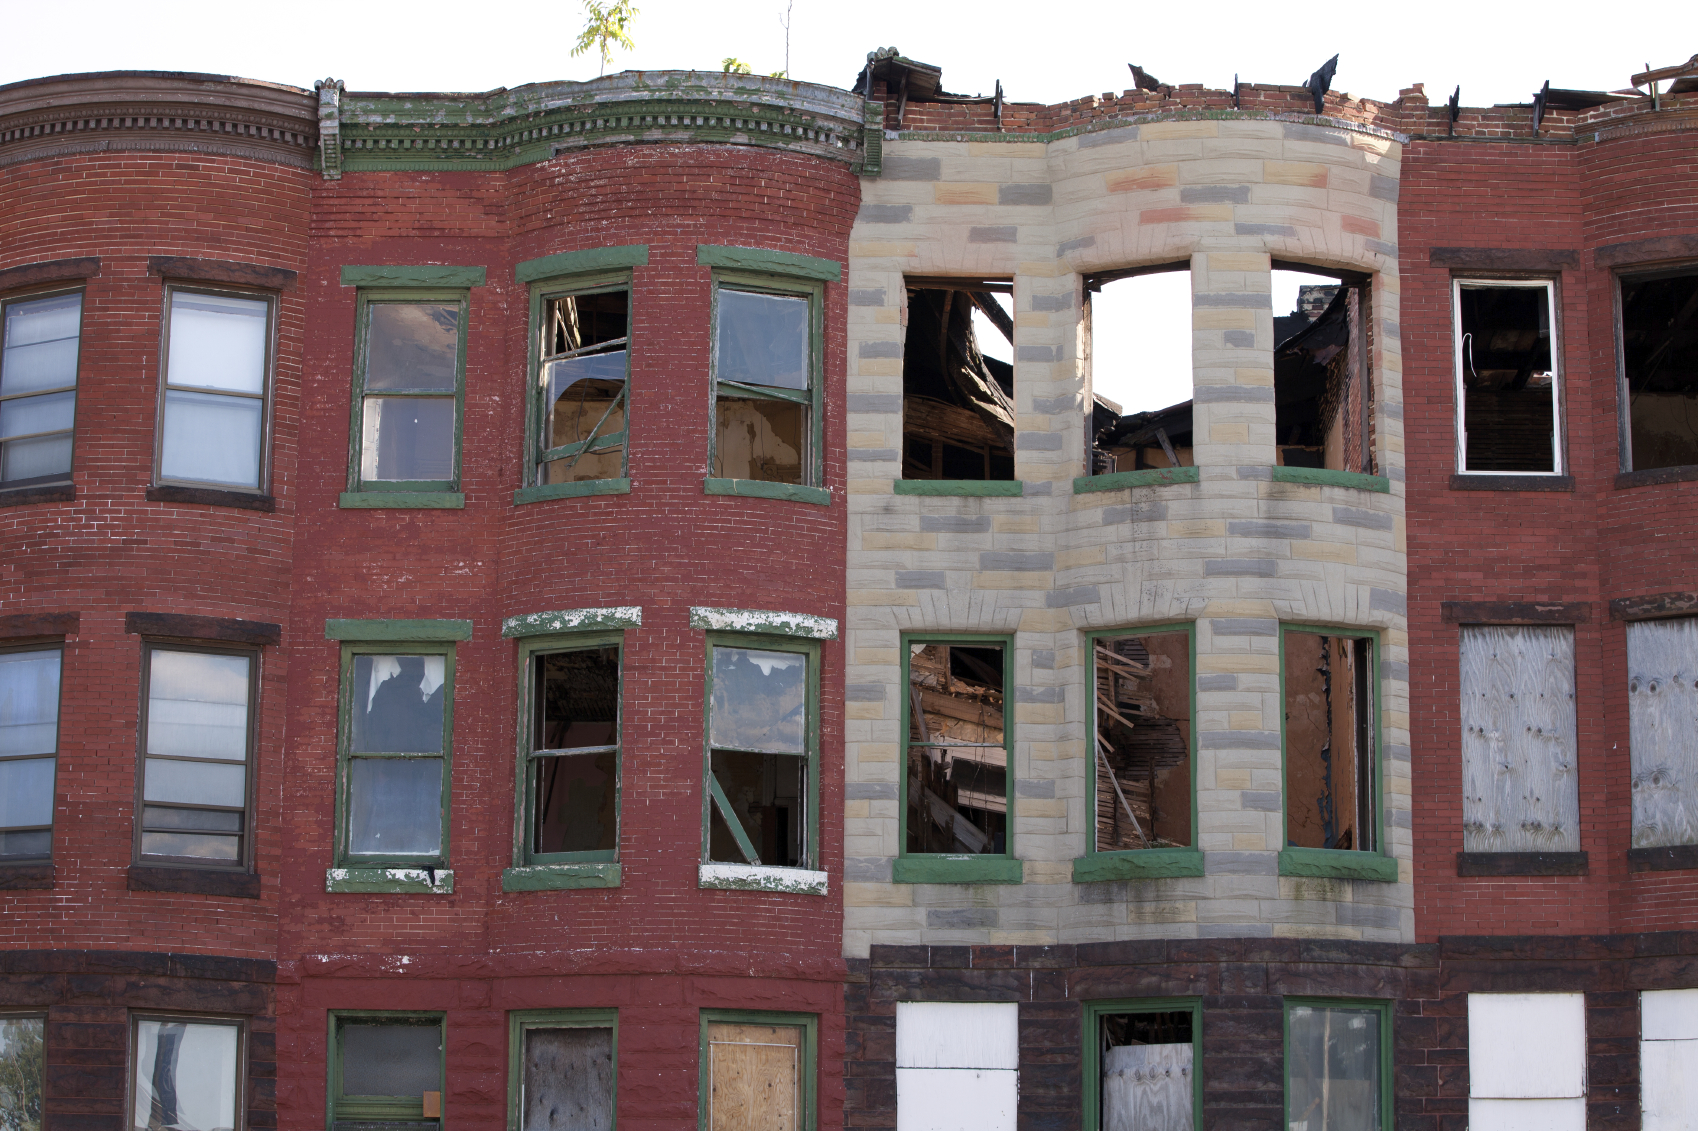 Thousands in Cincinnati are filing complaints against unsafe and unhealthy living conditions.